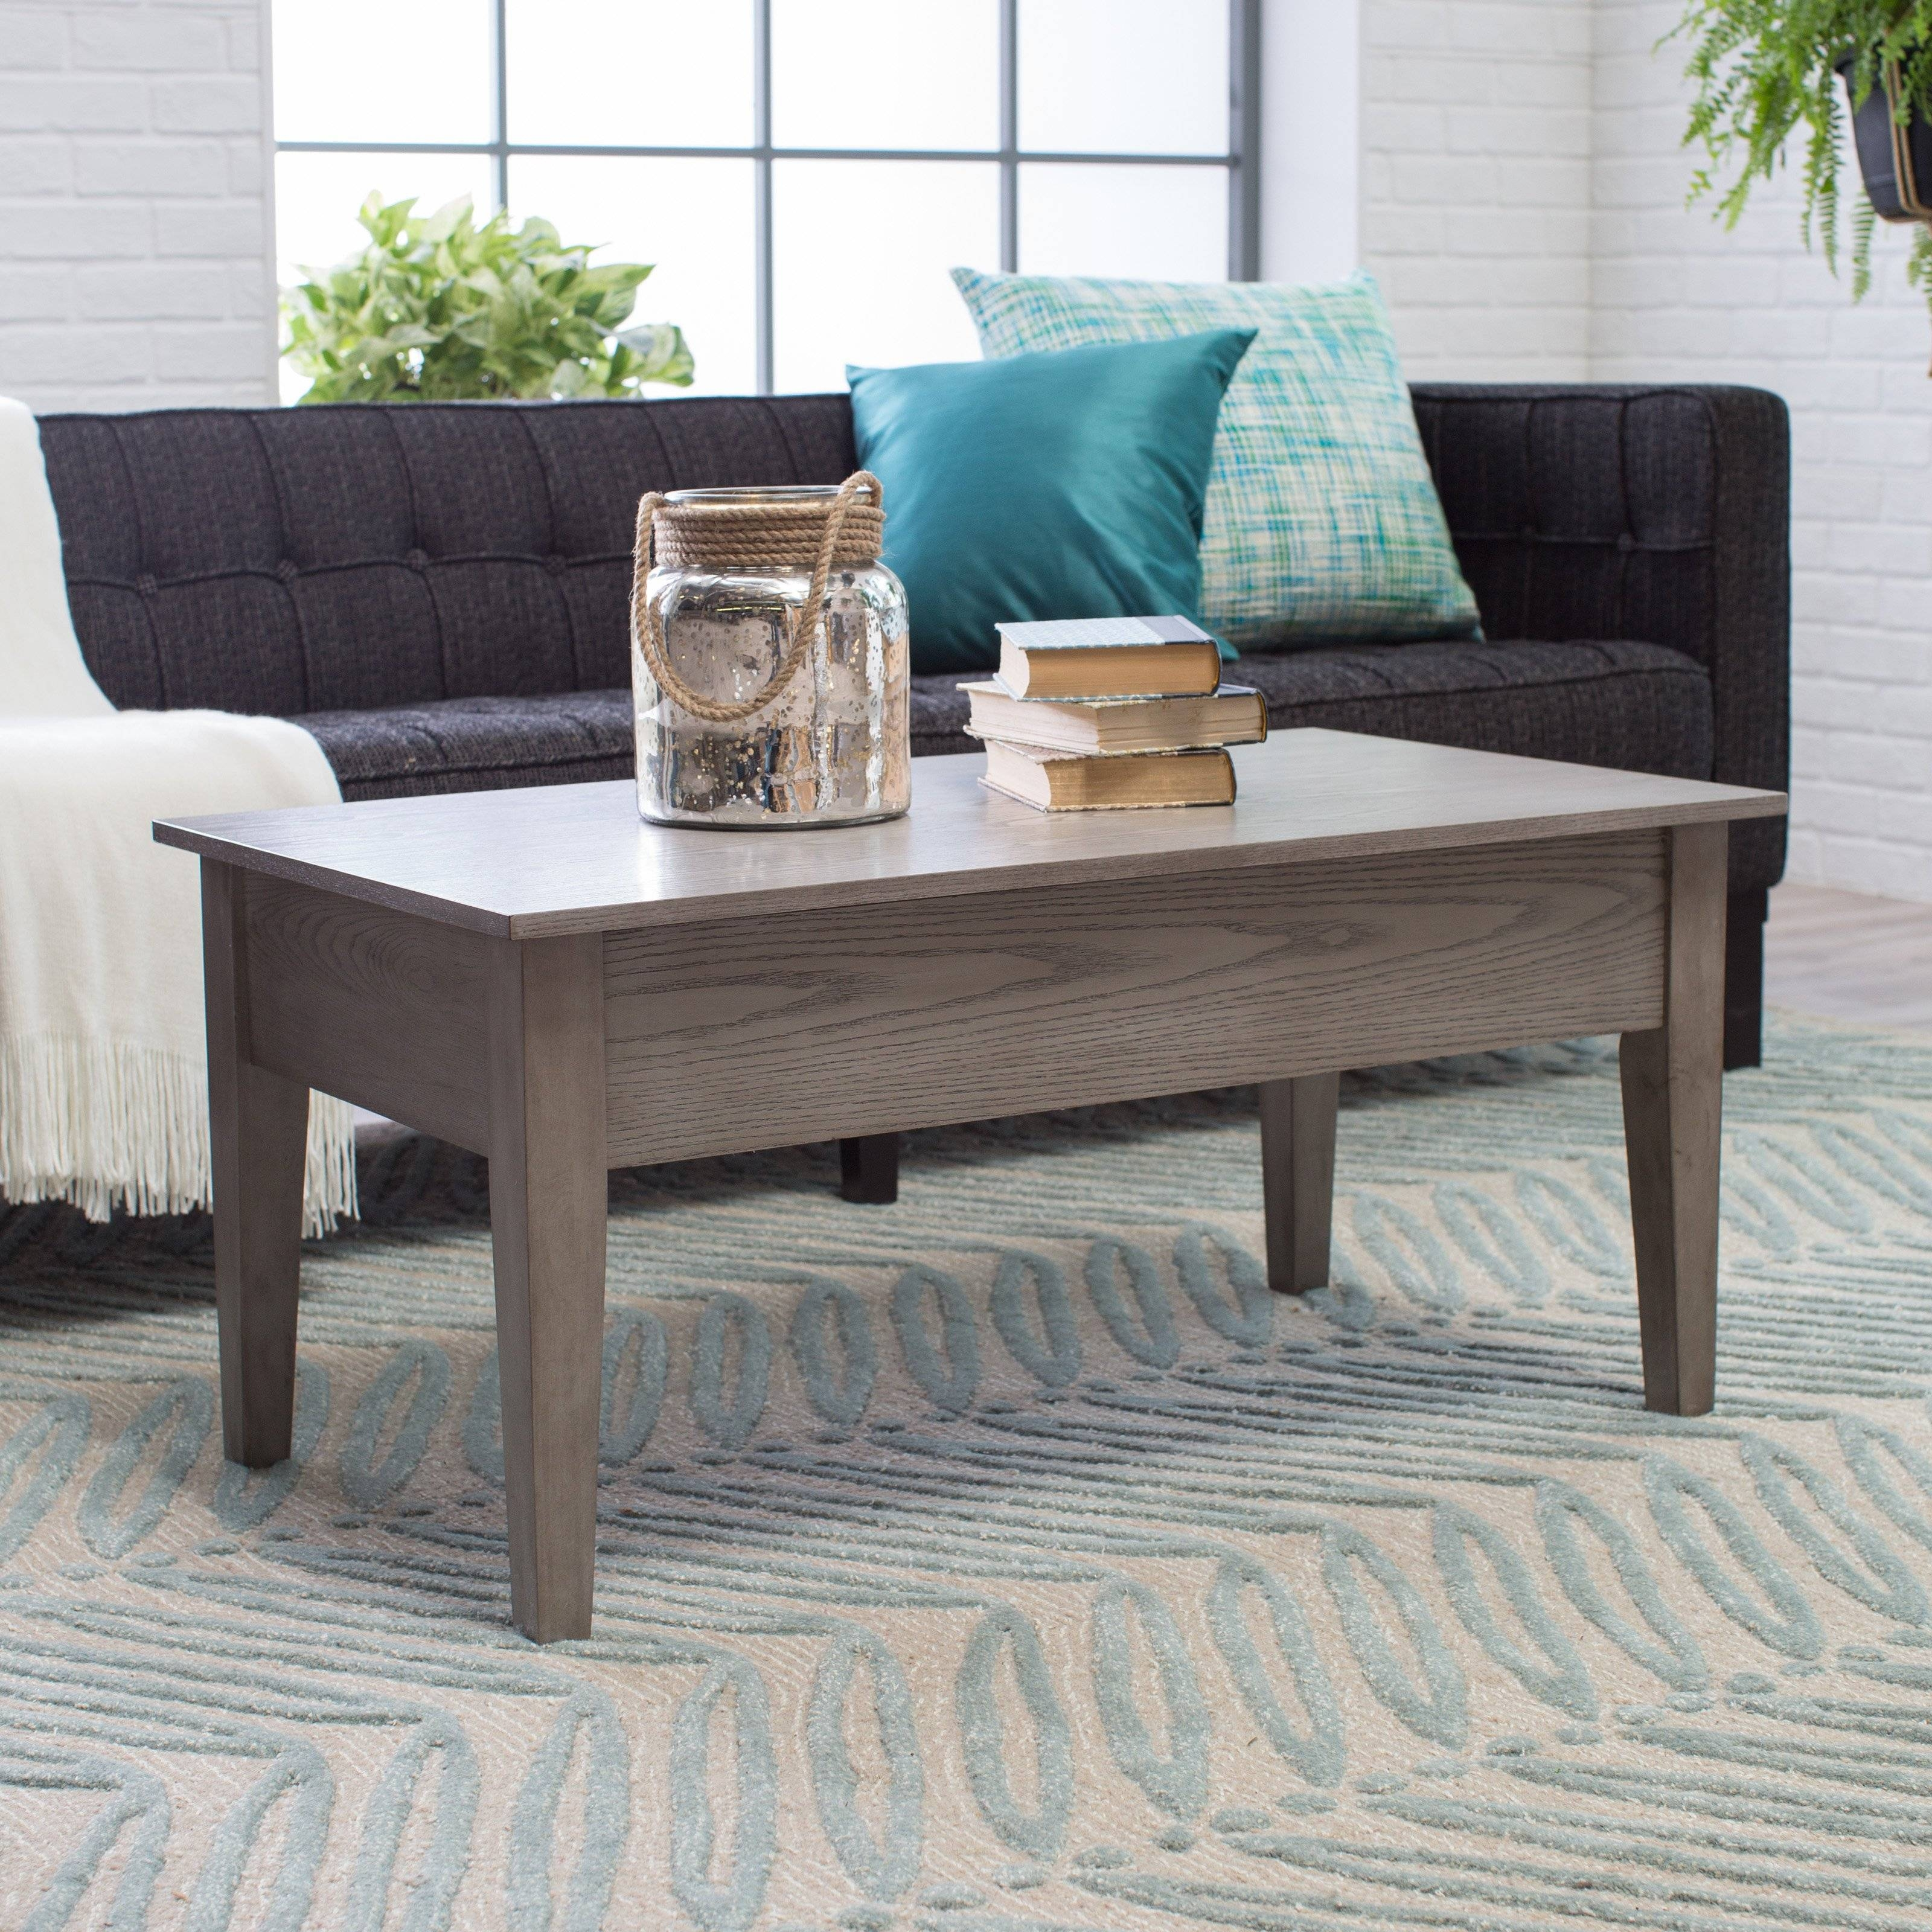 Belham Living Hampton Lift-Top Coffee Table - White/oak - Coffee for Lift Up Coffee Tables (Image 4 of 30)